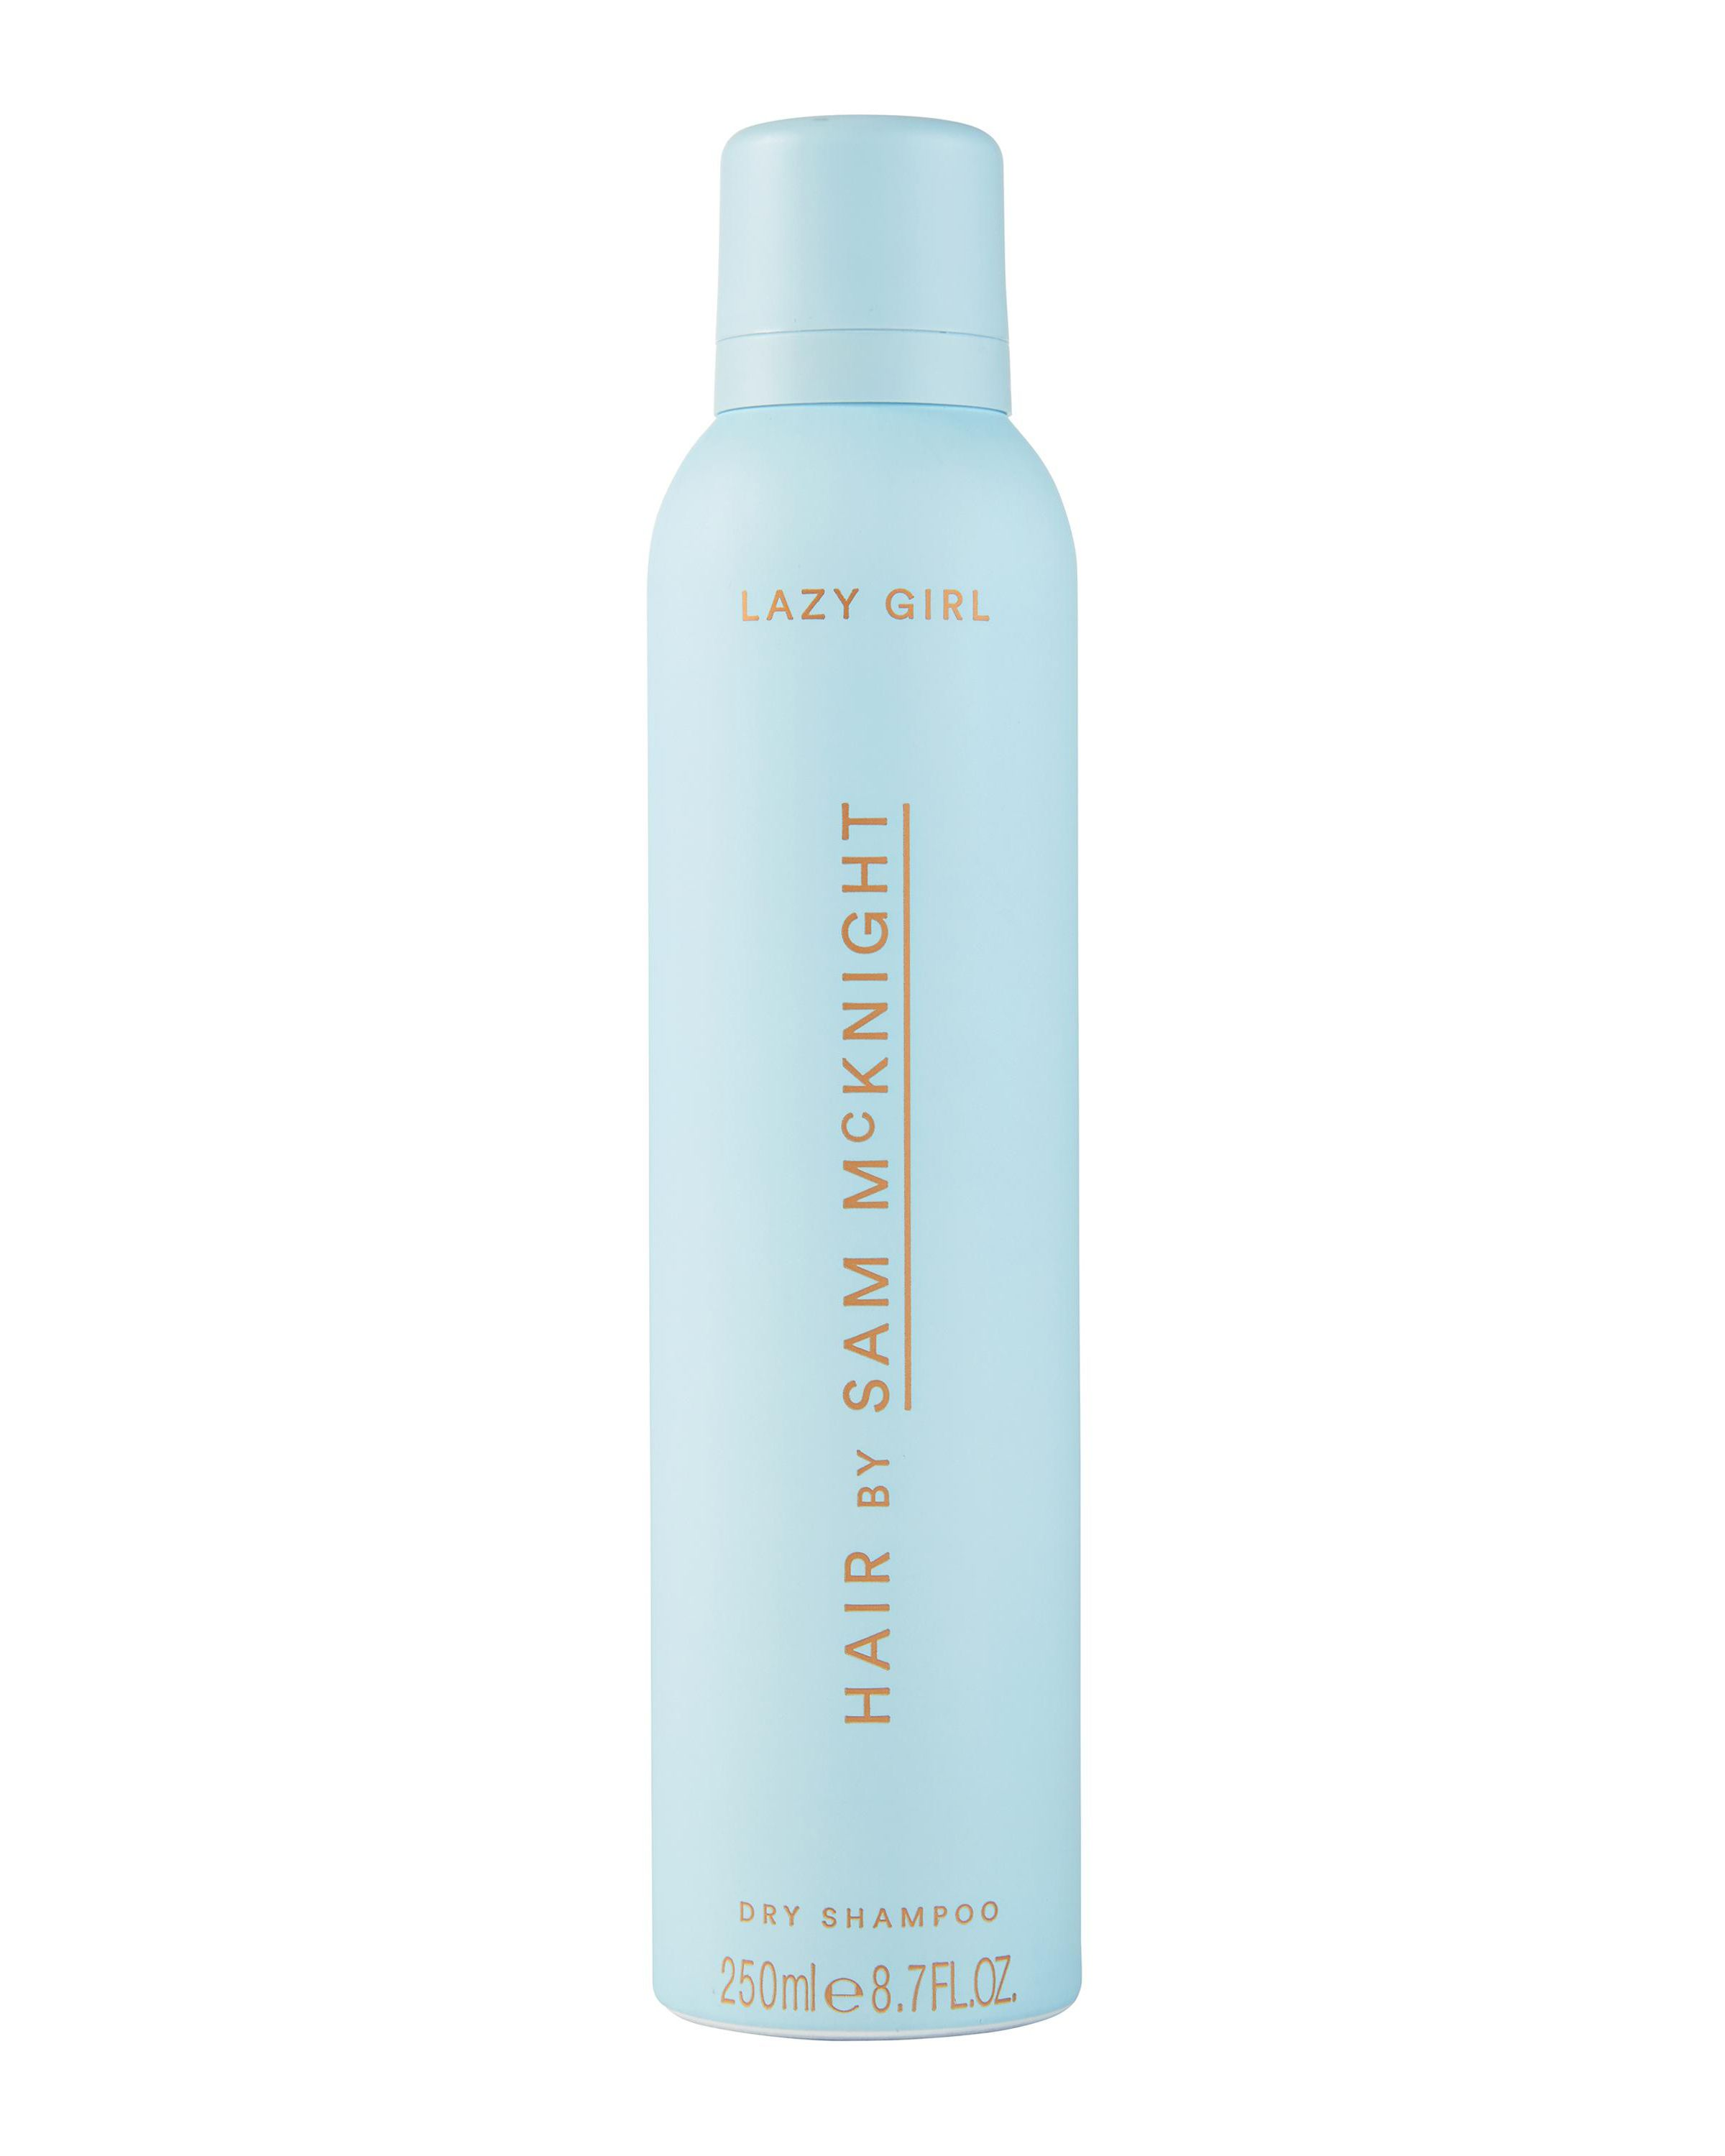 Hair By Sam McKnight Lazy Girl Dry Shampoo